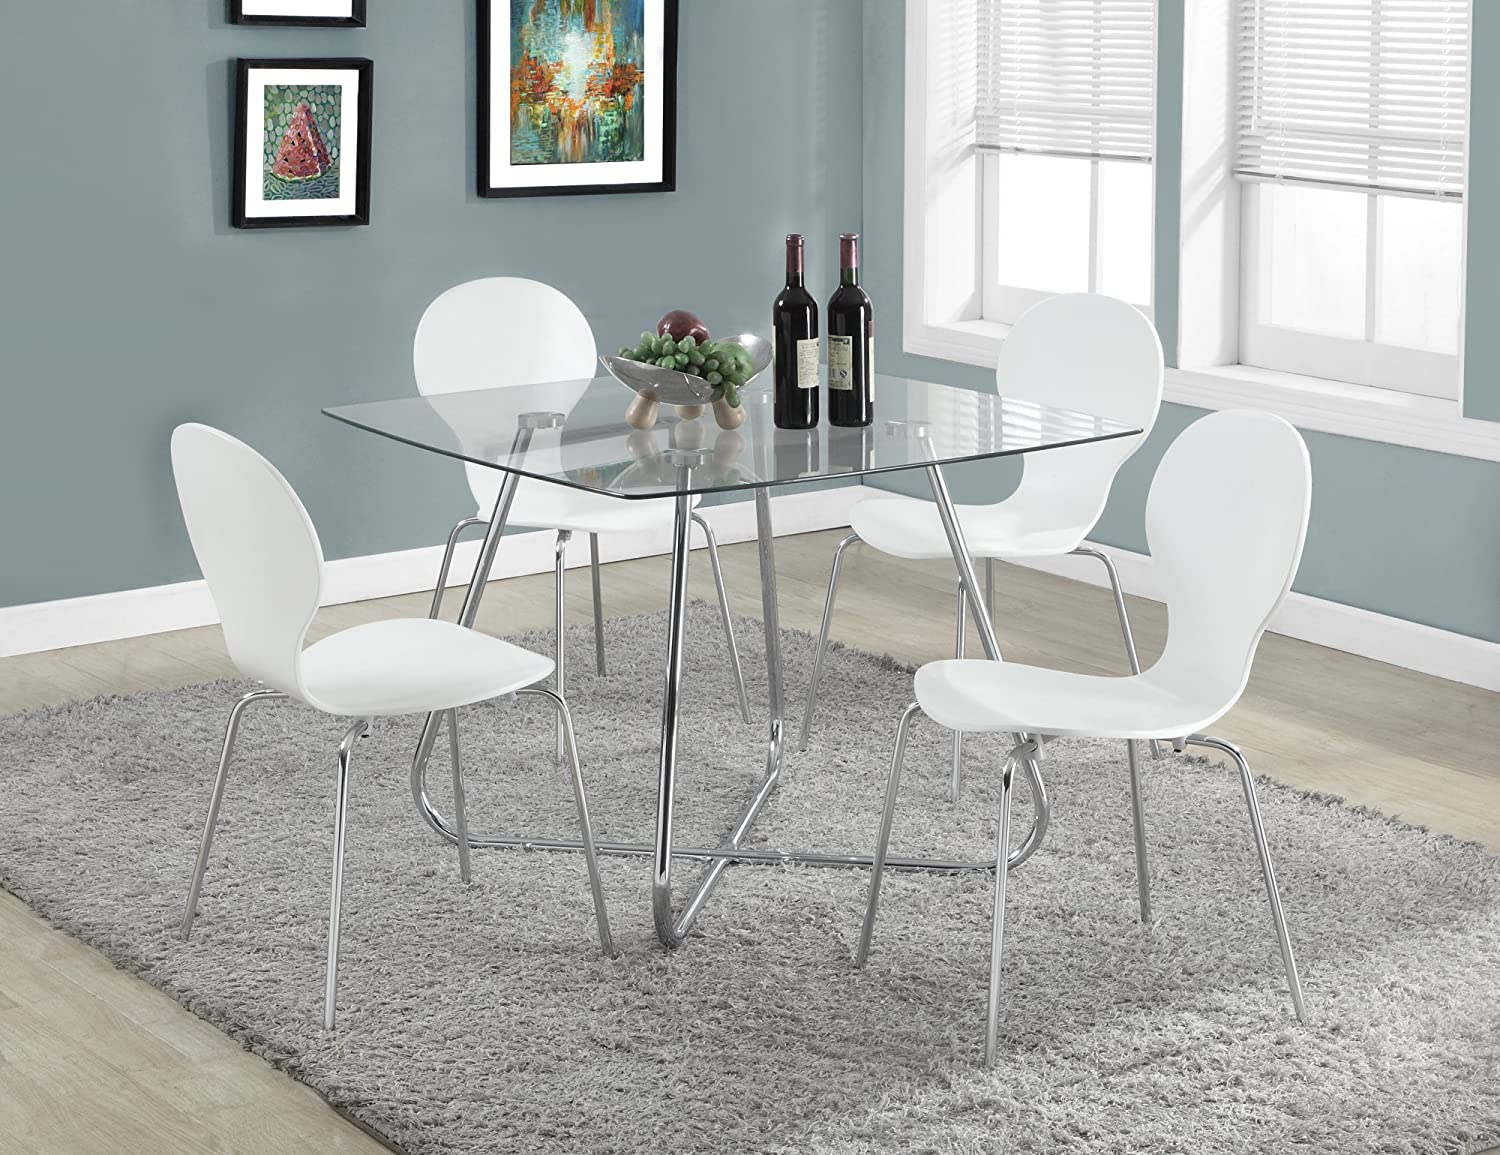 Monarch Specialties I 1070 Chrome Metal Tempered Glass Dining Table 8mm 40 Amazonca Home Kitchen